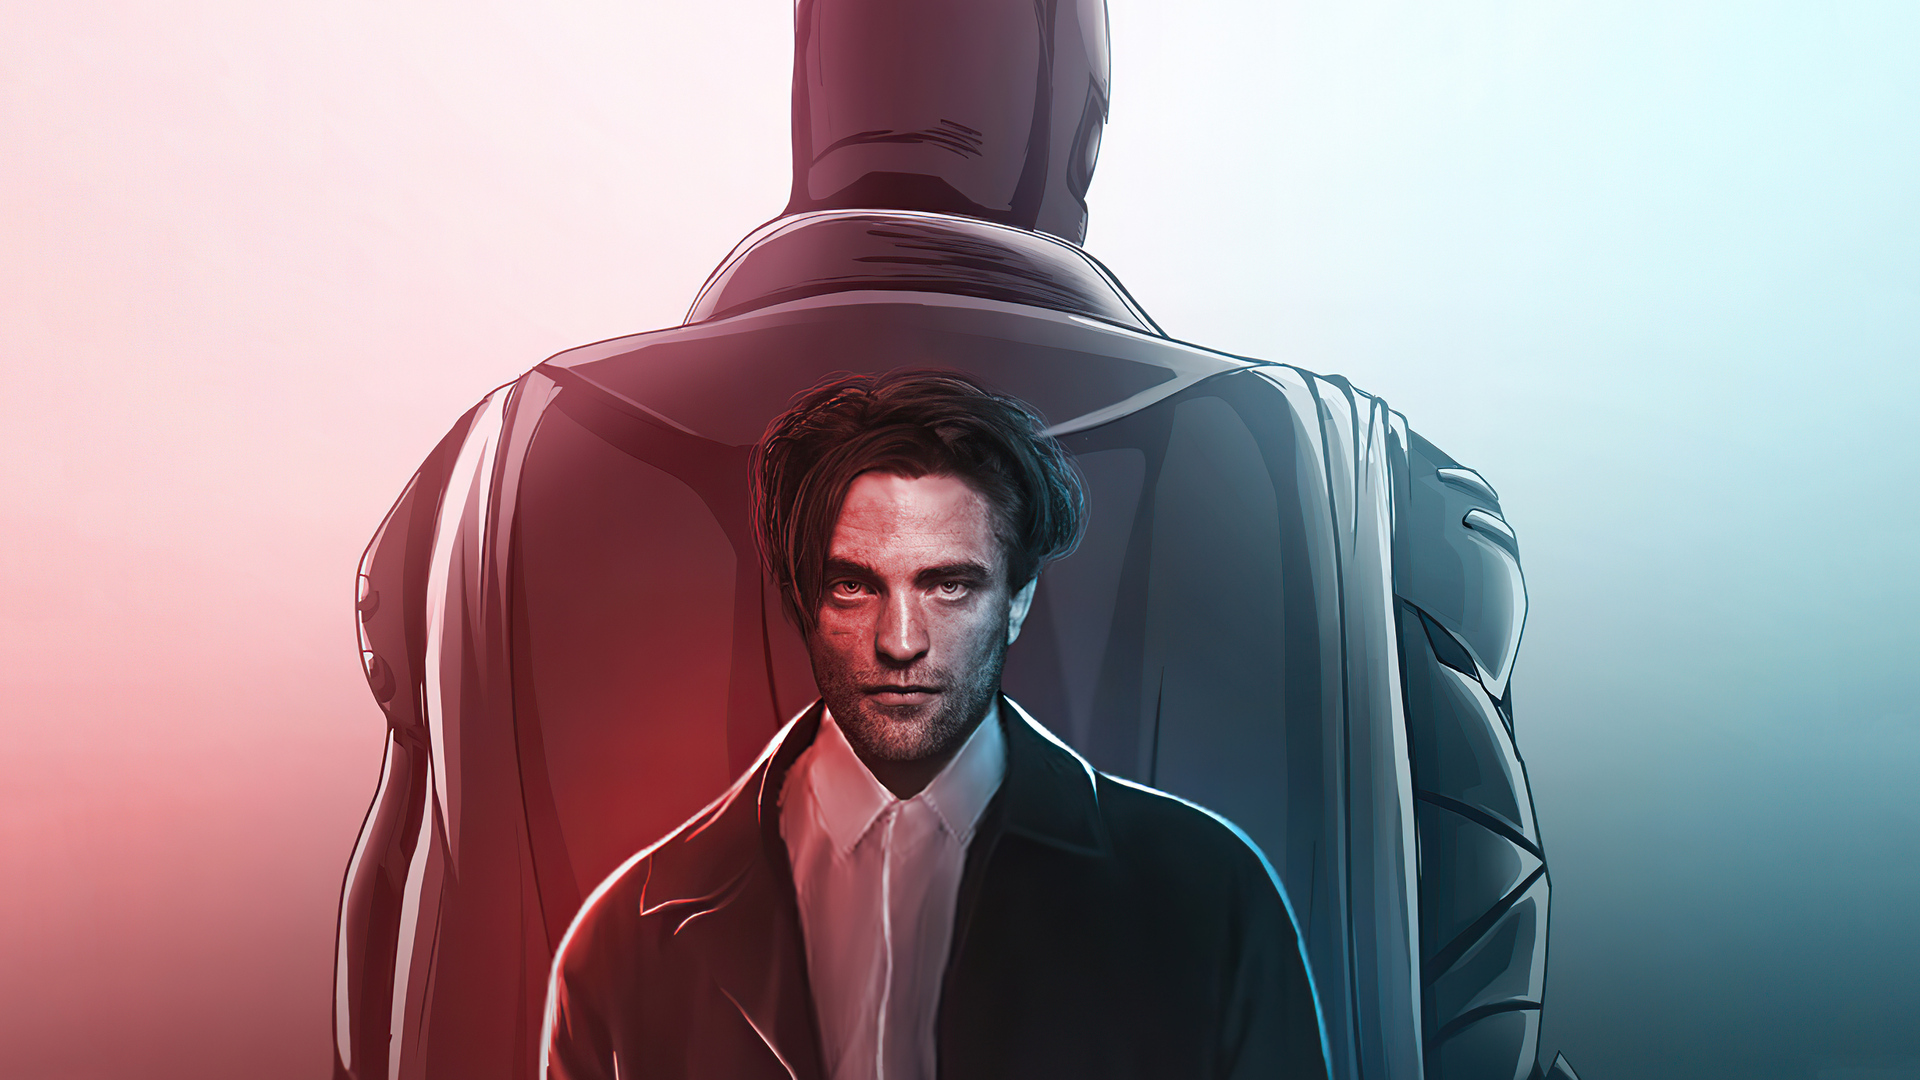 the-batman-robert-pattinson-art-4k-jd.jpg